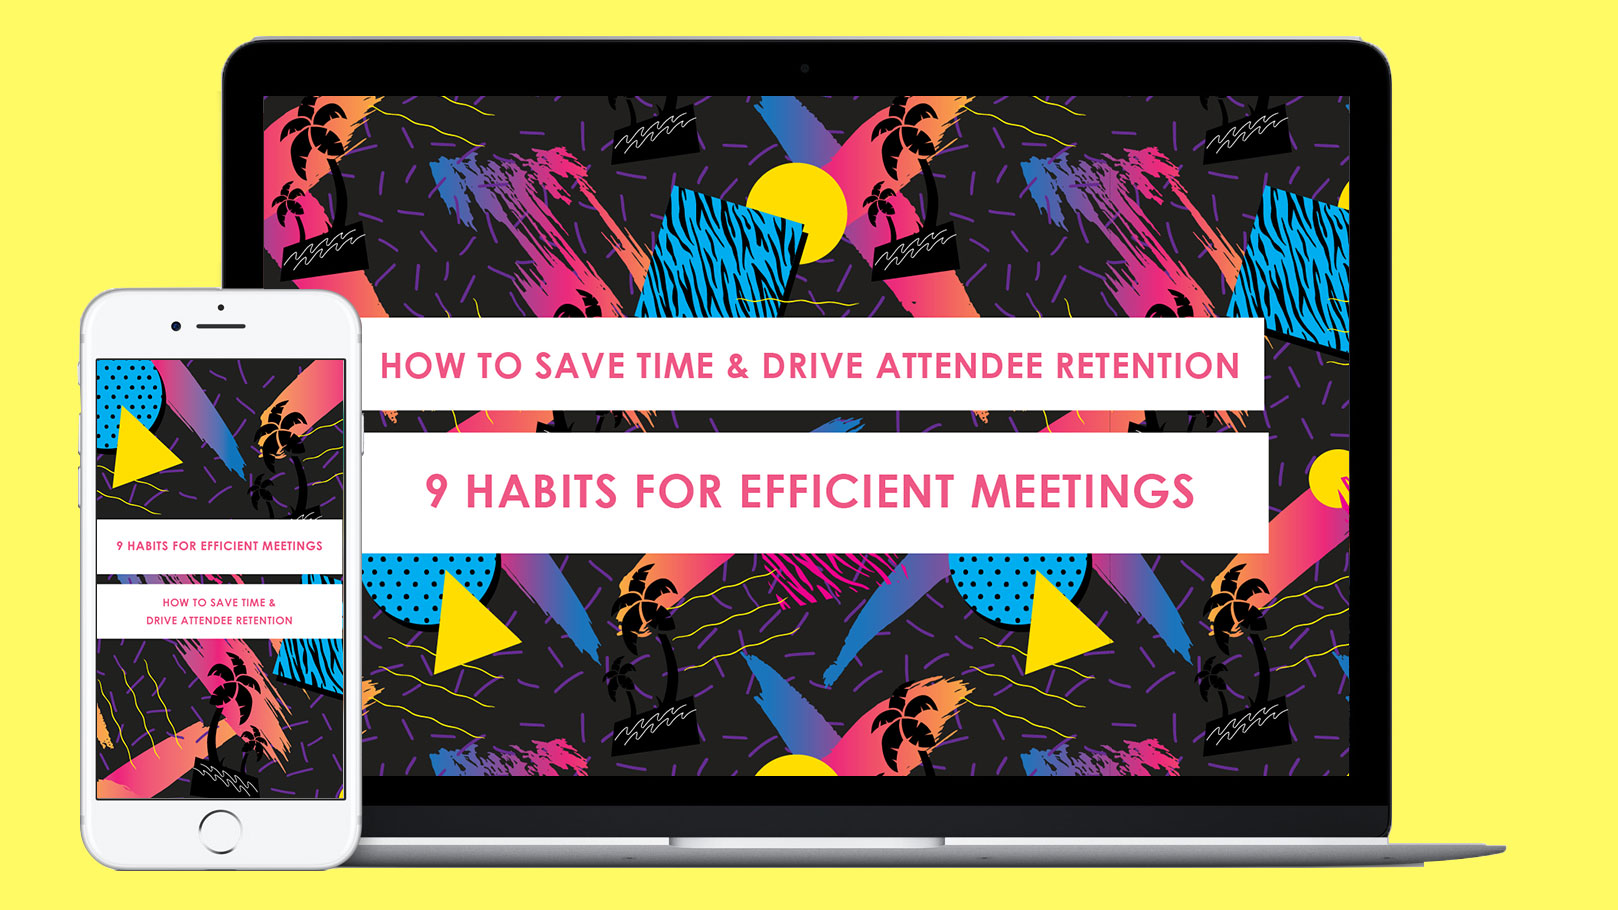 How to save time and drive attendee retention- 9 habits for efficient meetings